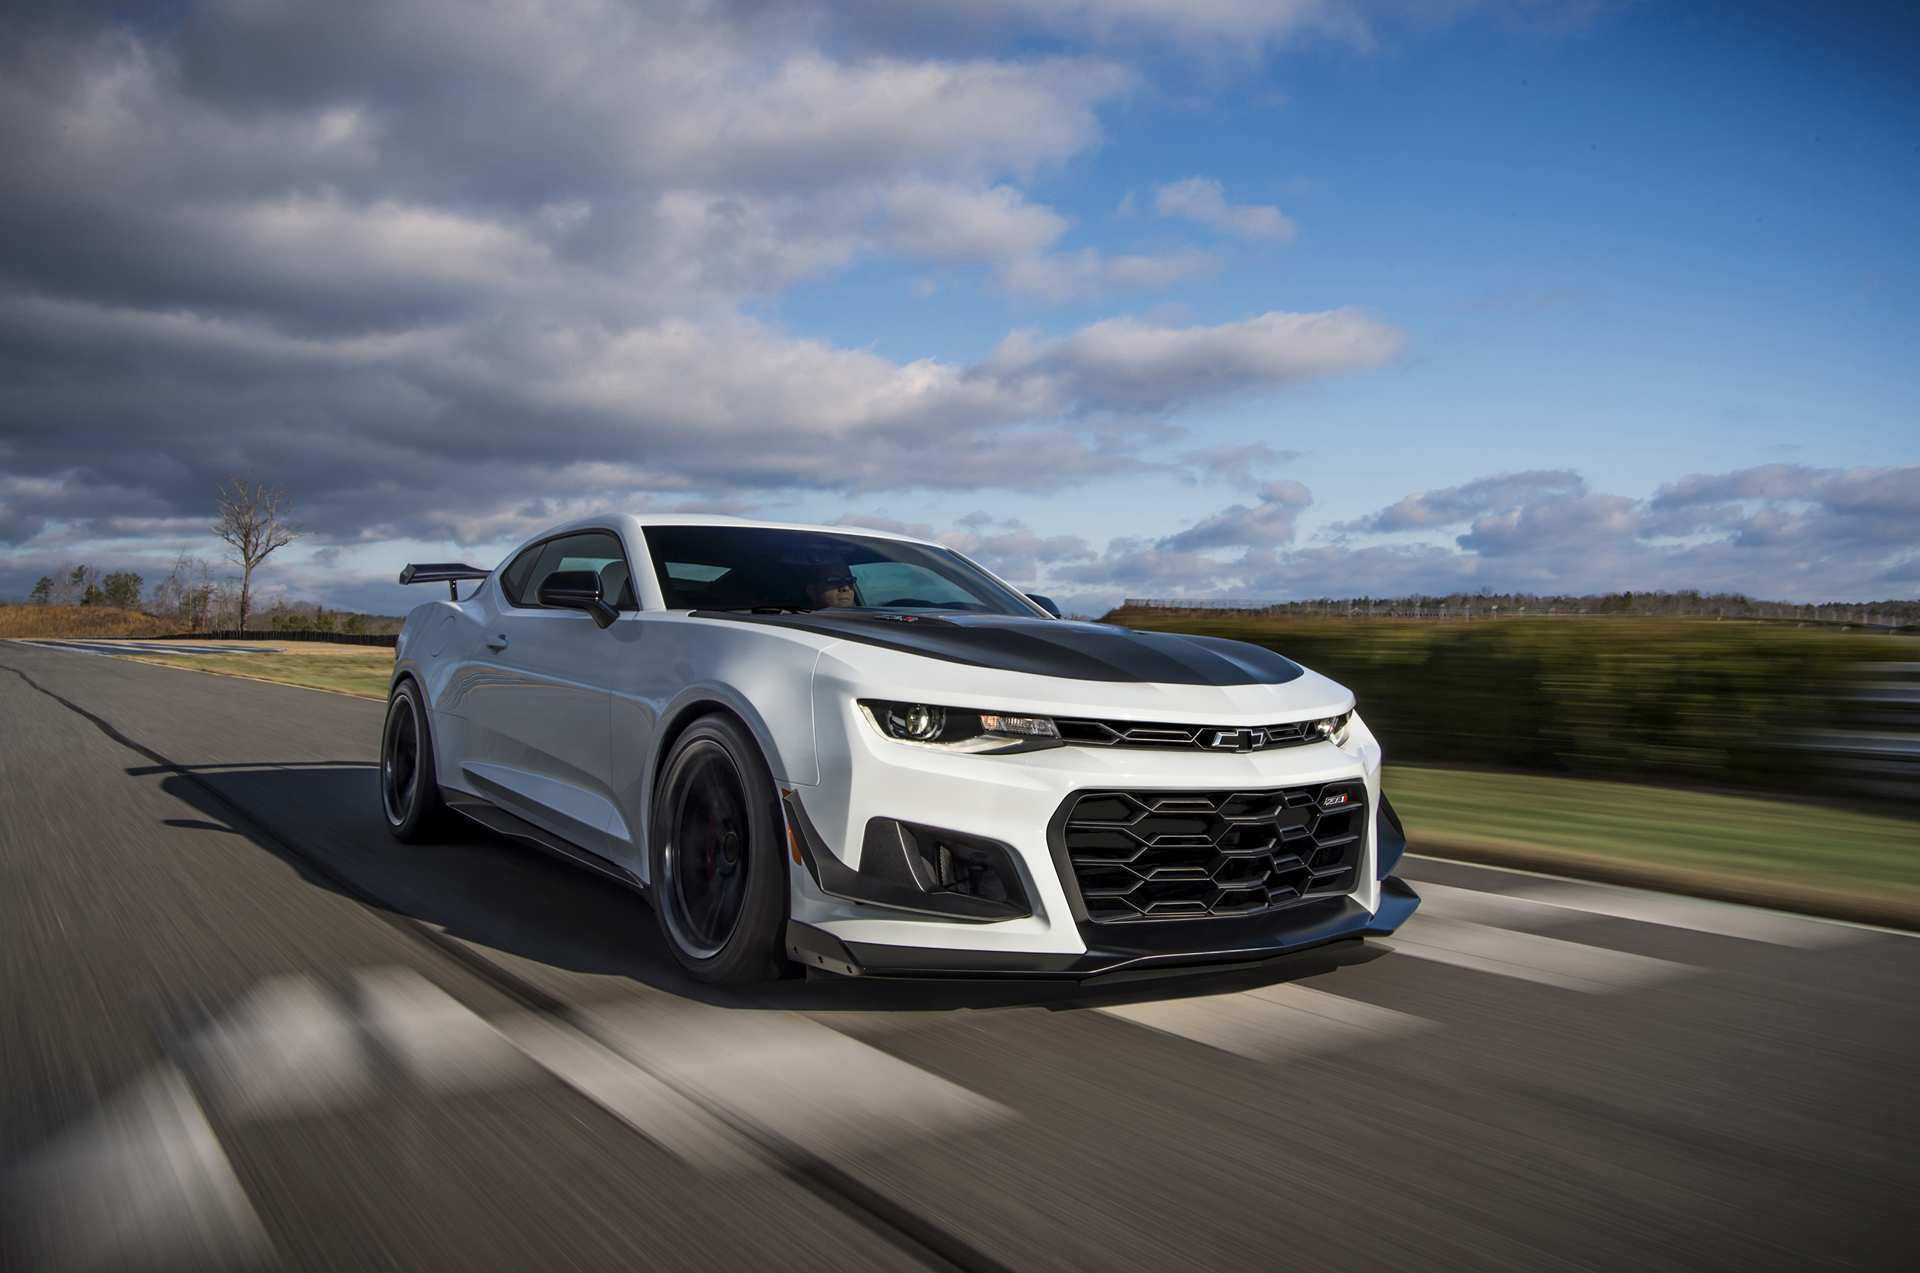 30 A 2020 Chevy Camaro Review